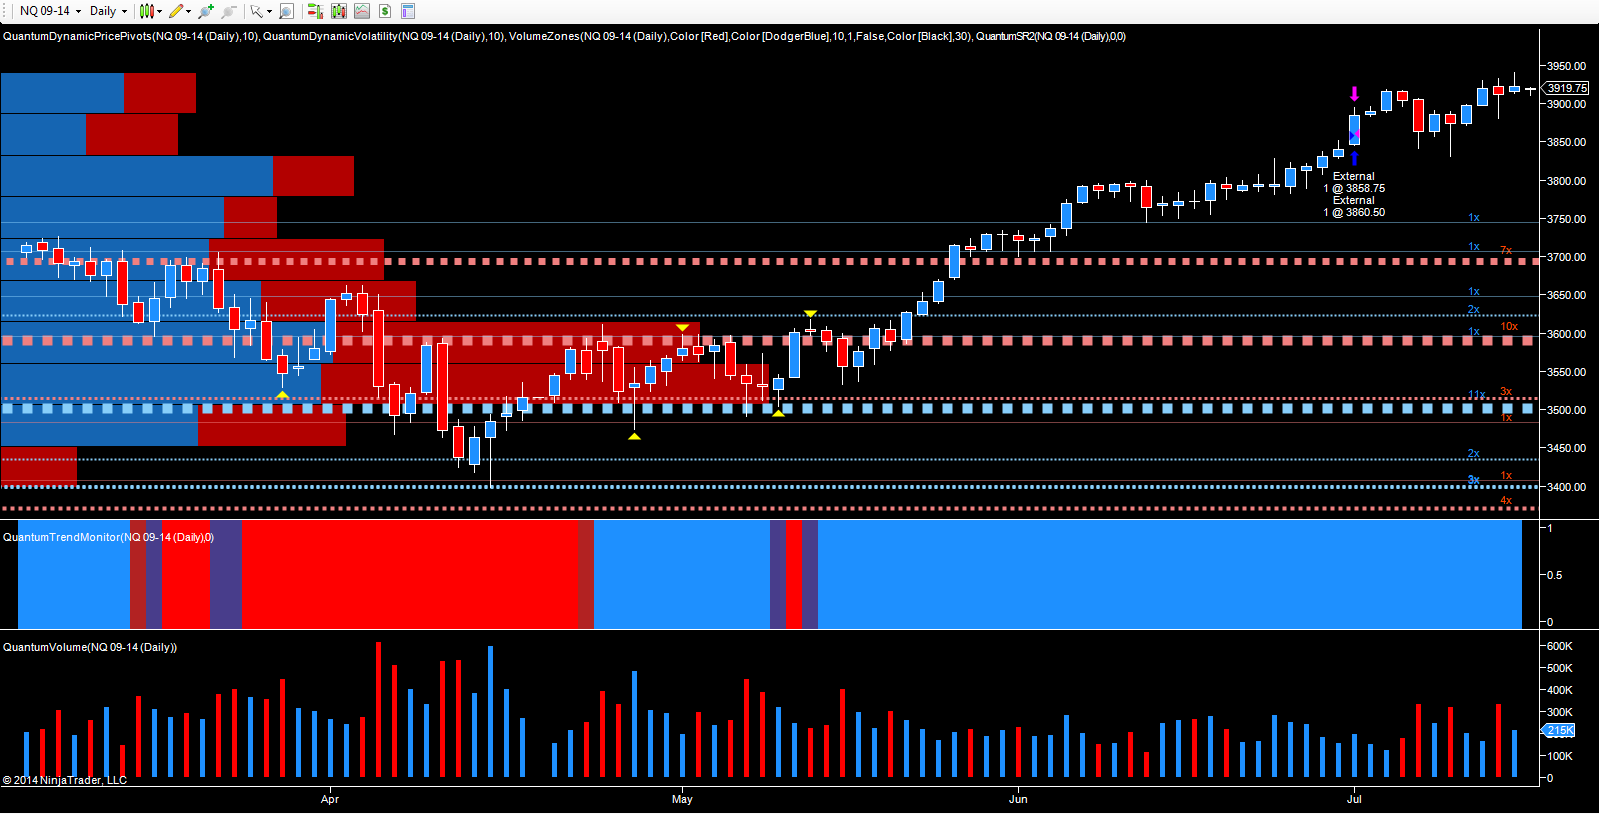 NQ Emini September - daily chart